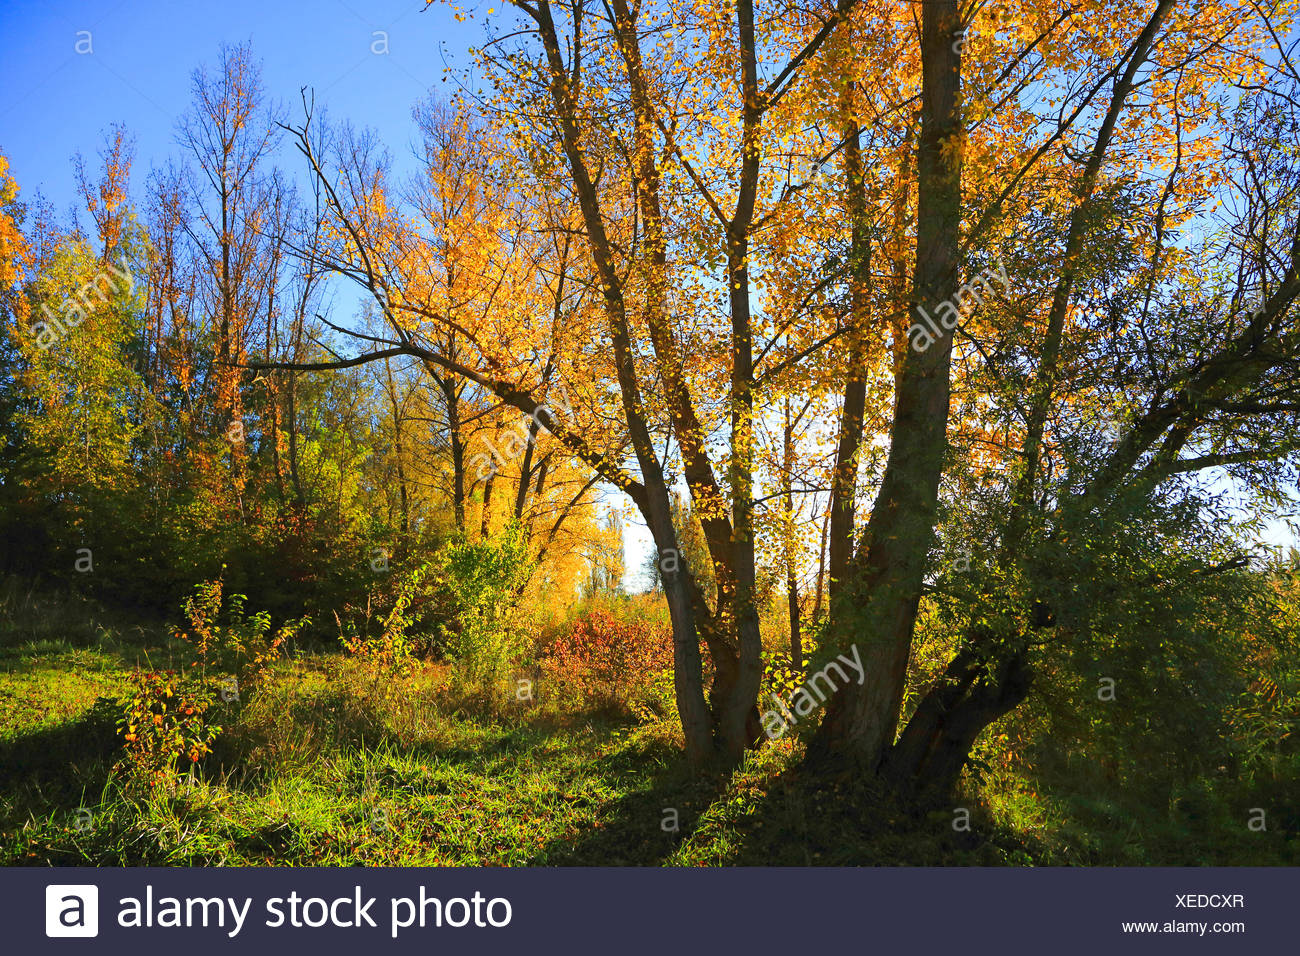 floodplain forest in autumn, Germany - Stock Image